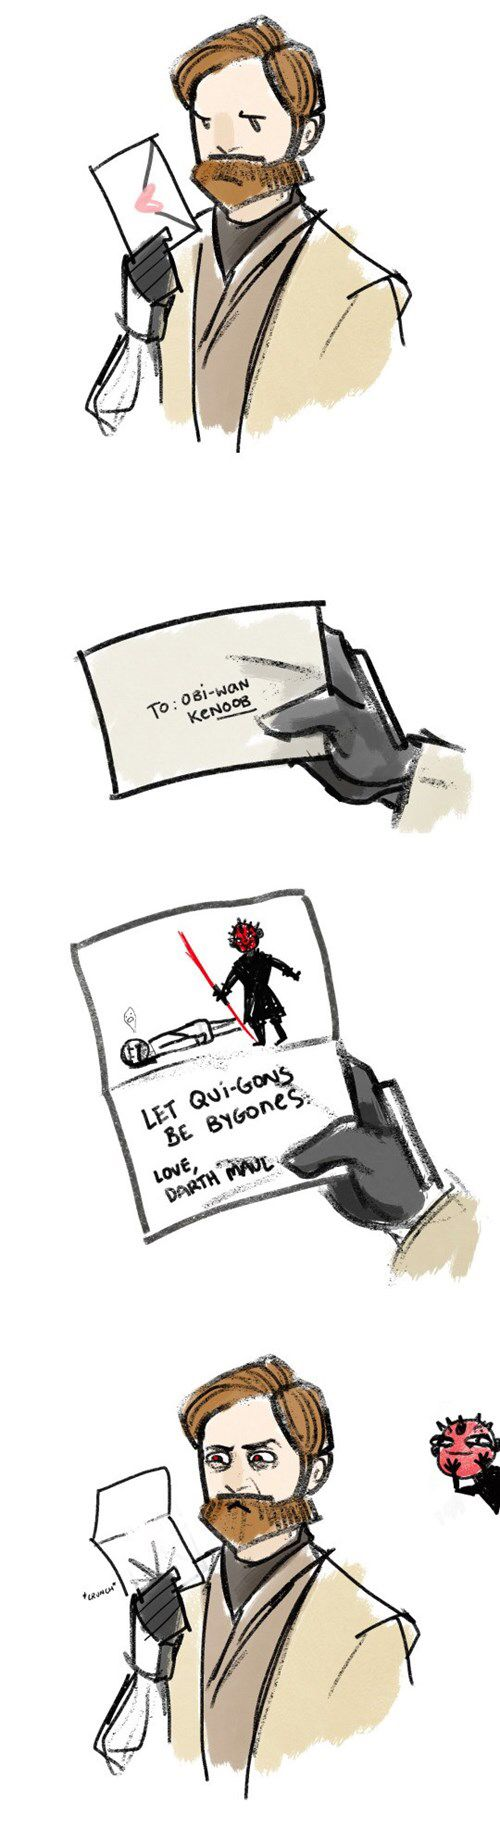 Darth Maul's Humor Never Really Got To Surface in Star Wars…